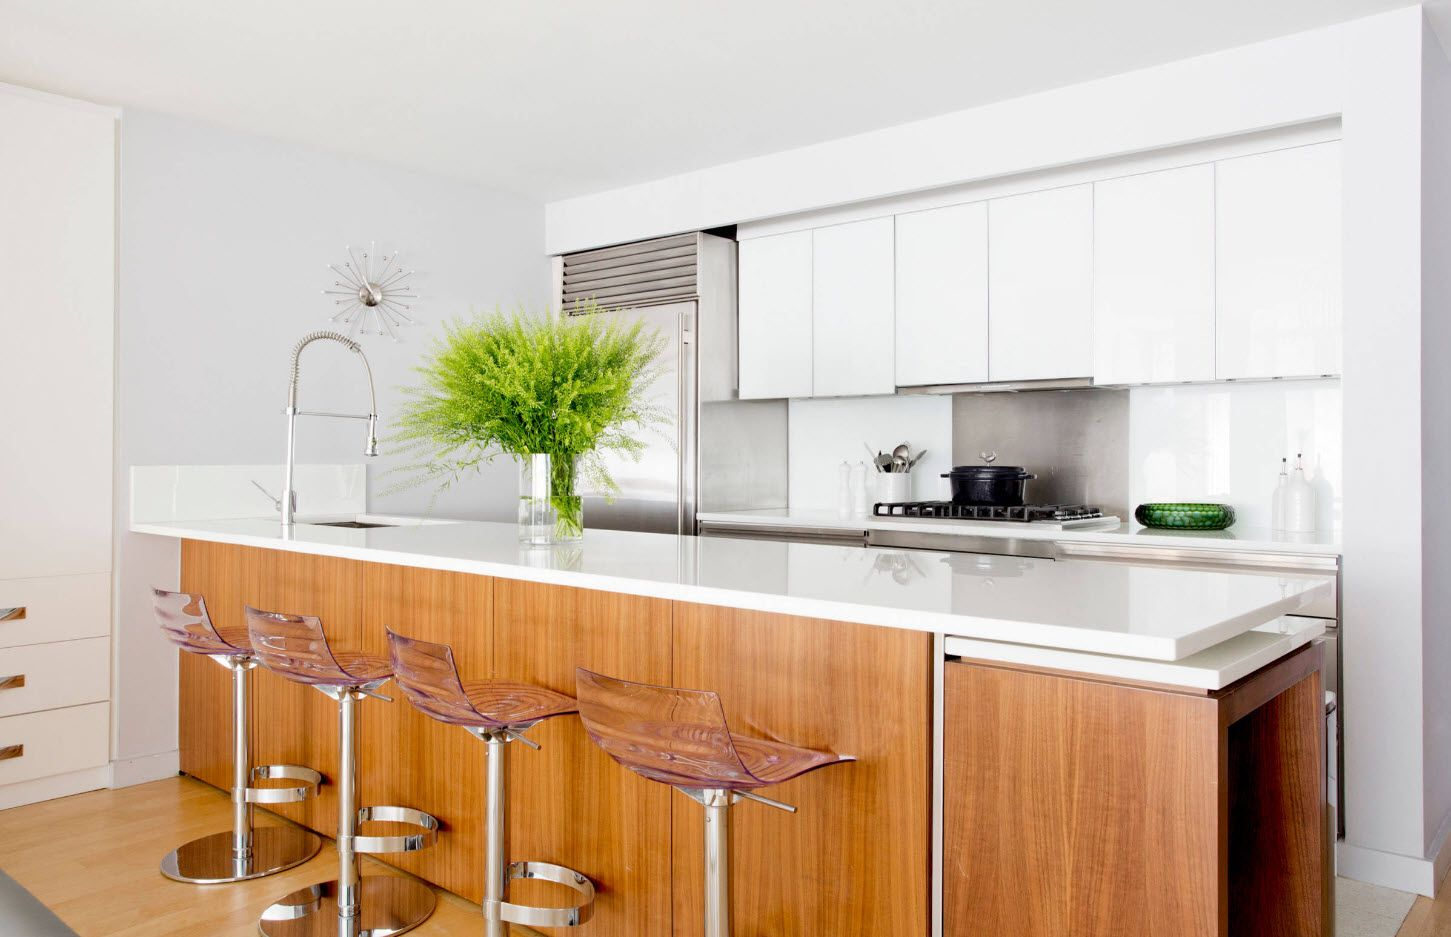 Gorgeous large kitchen with light wooden board of the kitchen island